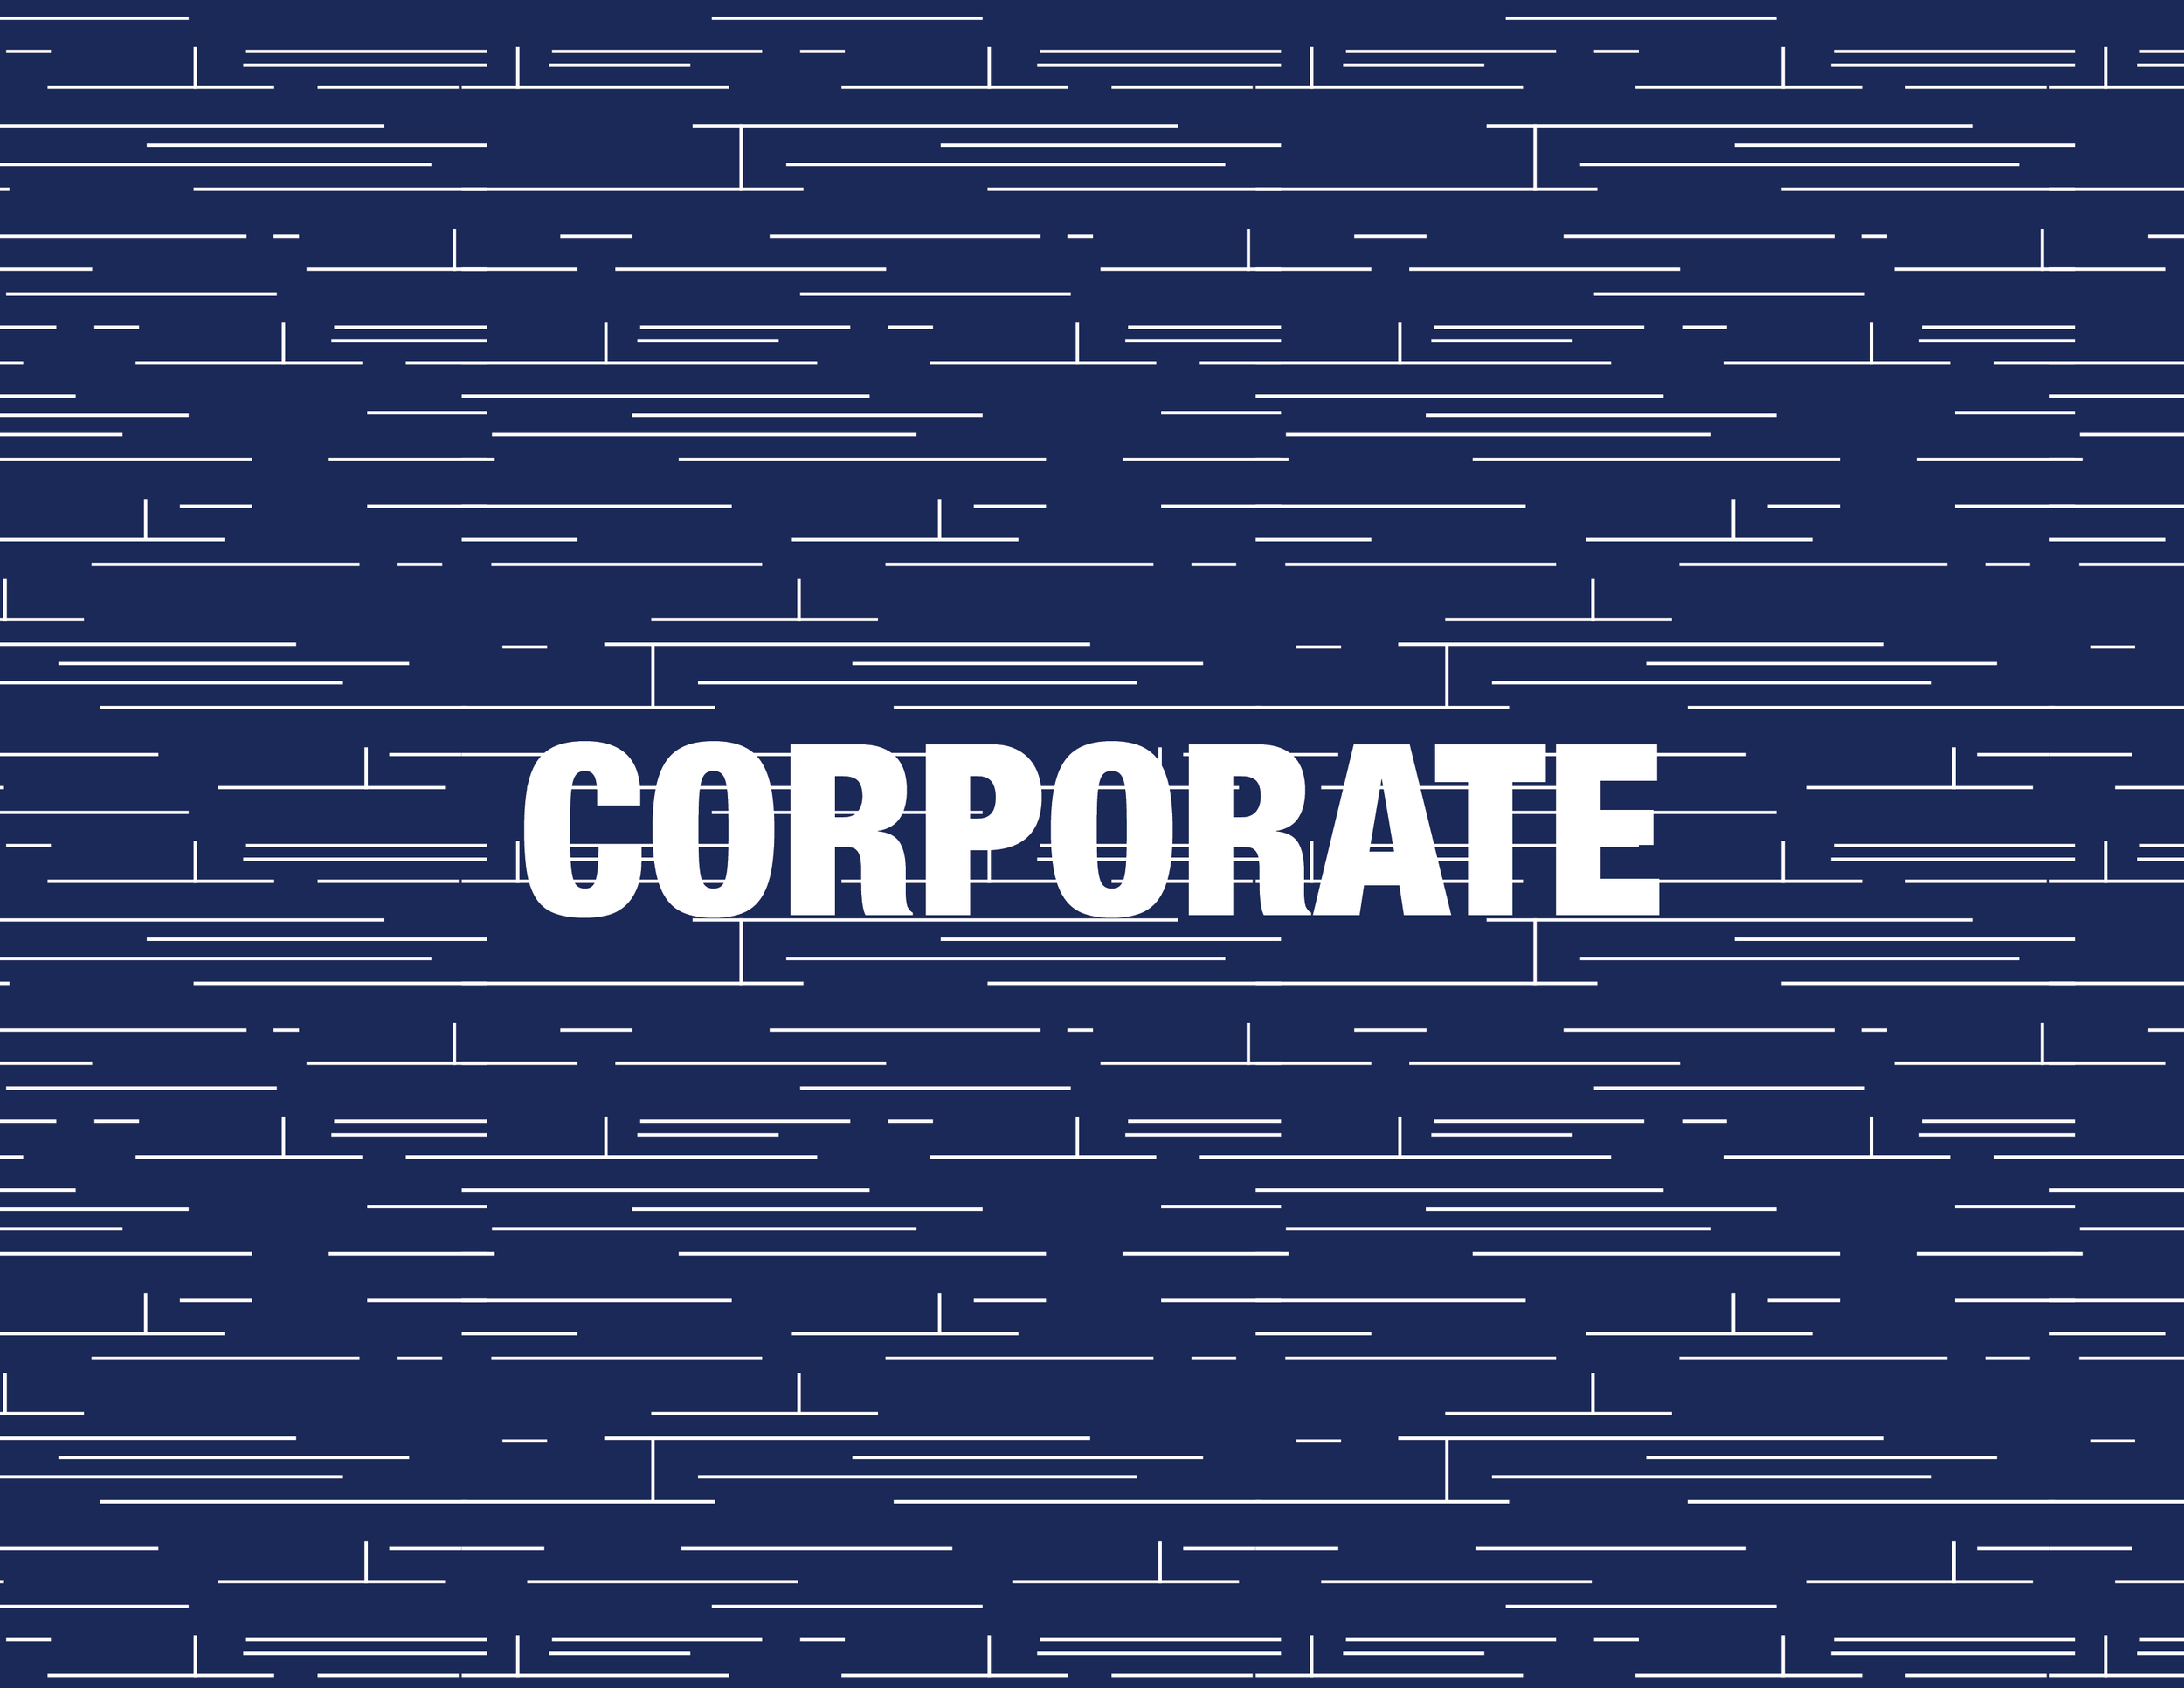 CORPORATES-02.png